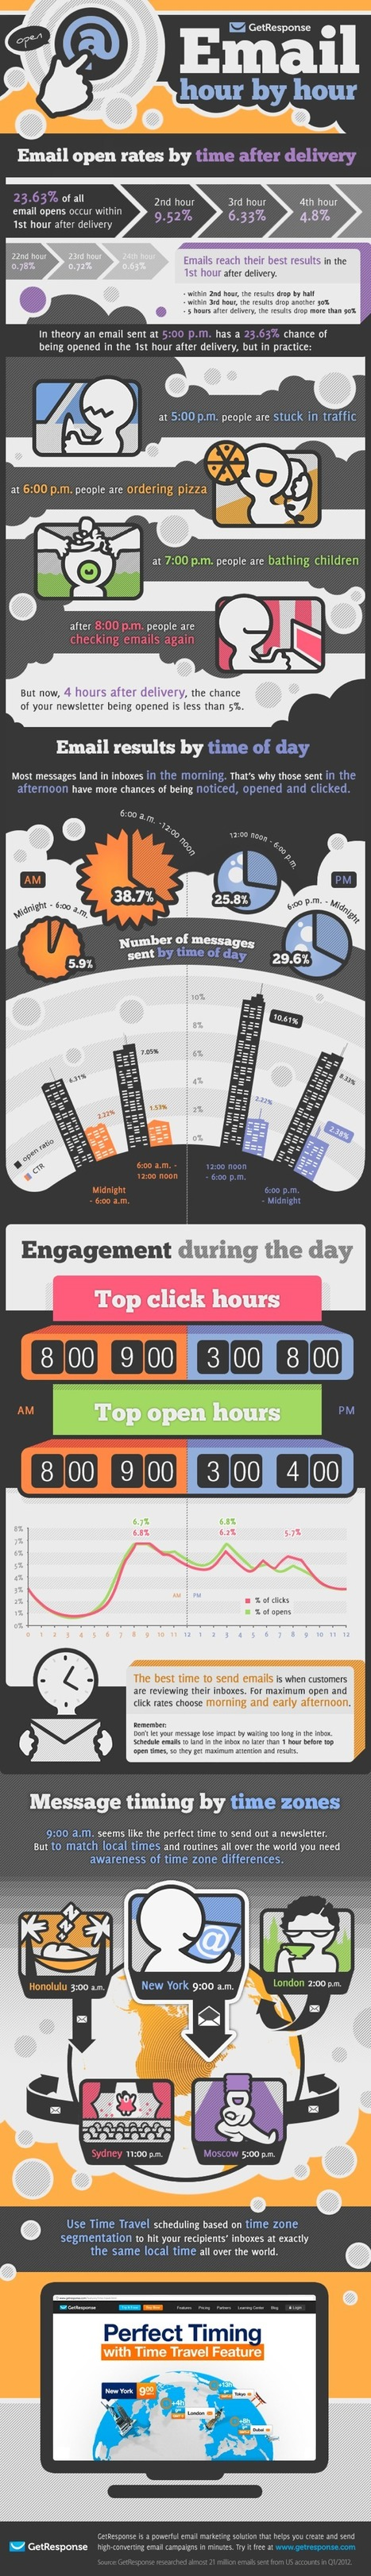 Email Hour By Hour | Social Media (network, technology, blog, community, virtual reality, etc...) | Scoop.it